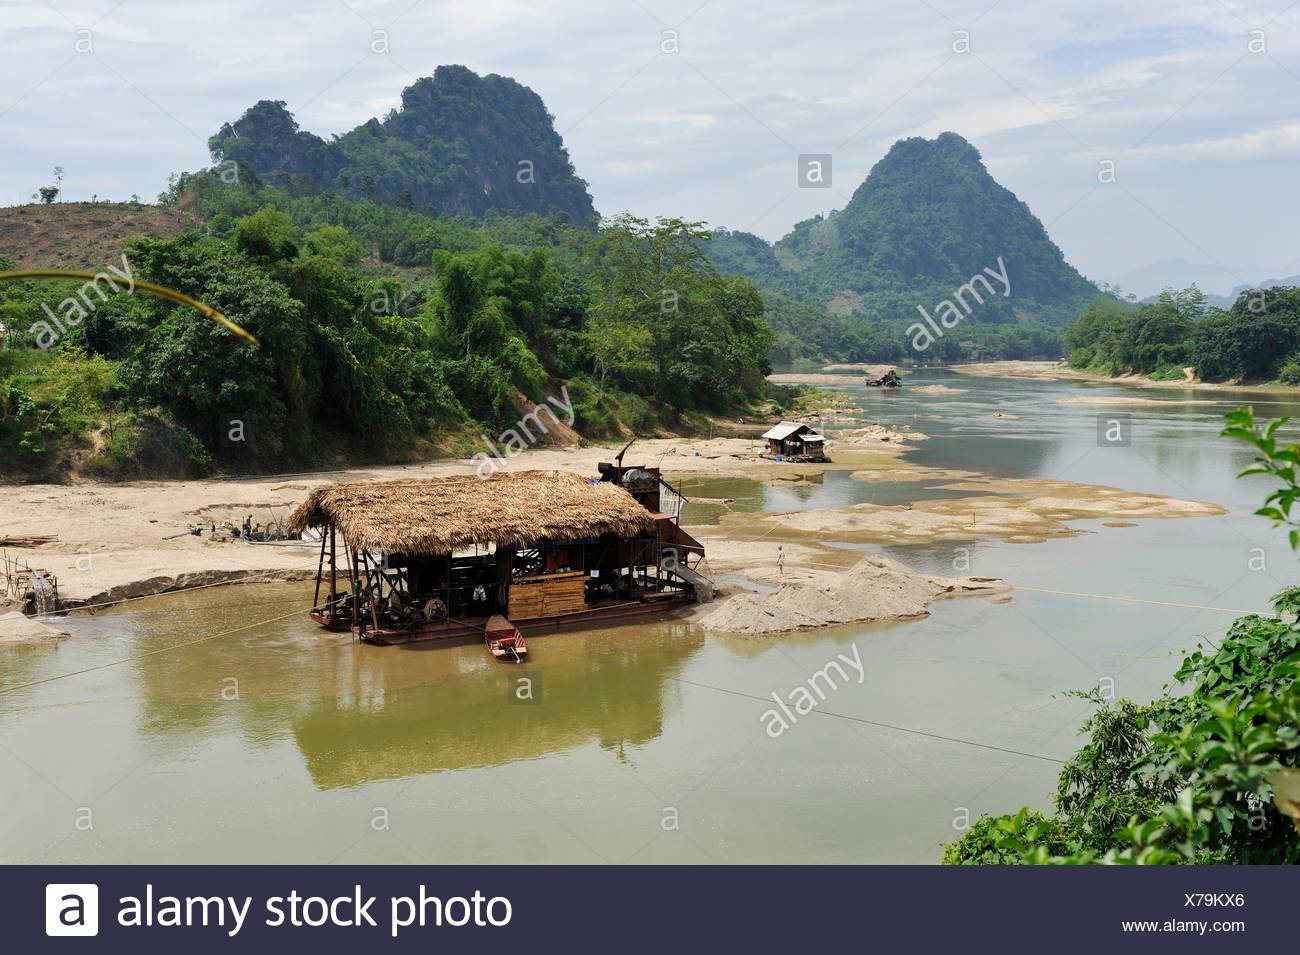 gold digger´s barge on Lo river, Ha Giang province, Northern Vietnam, southeast asia - Stock Image